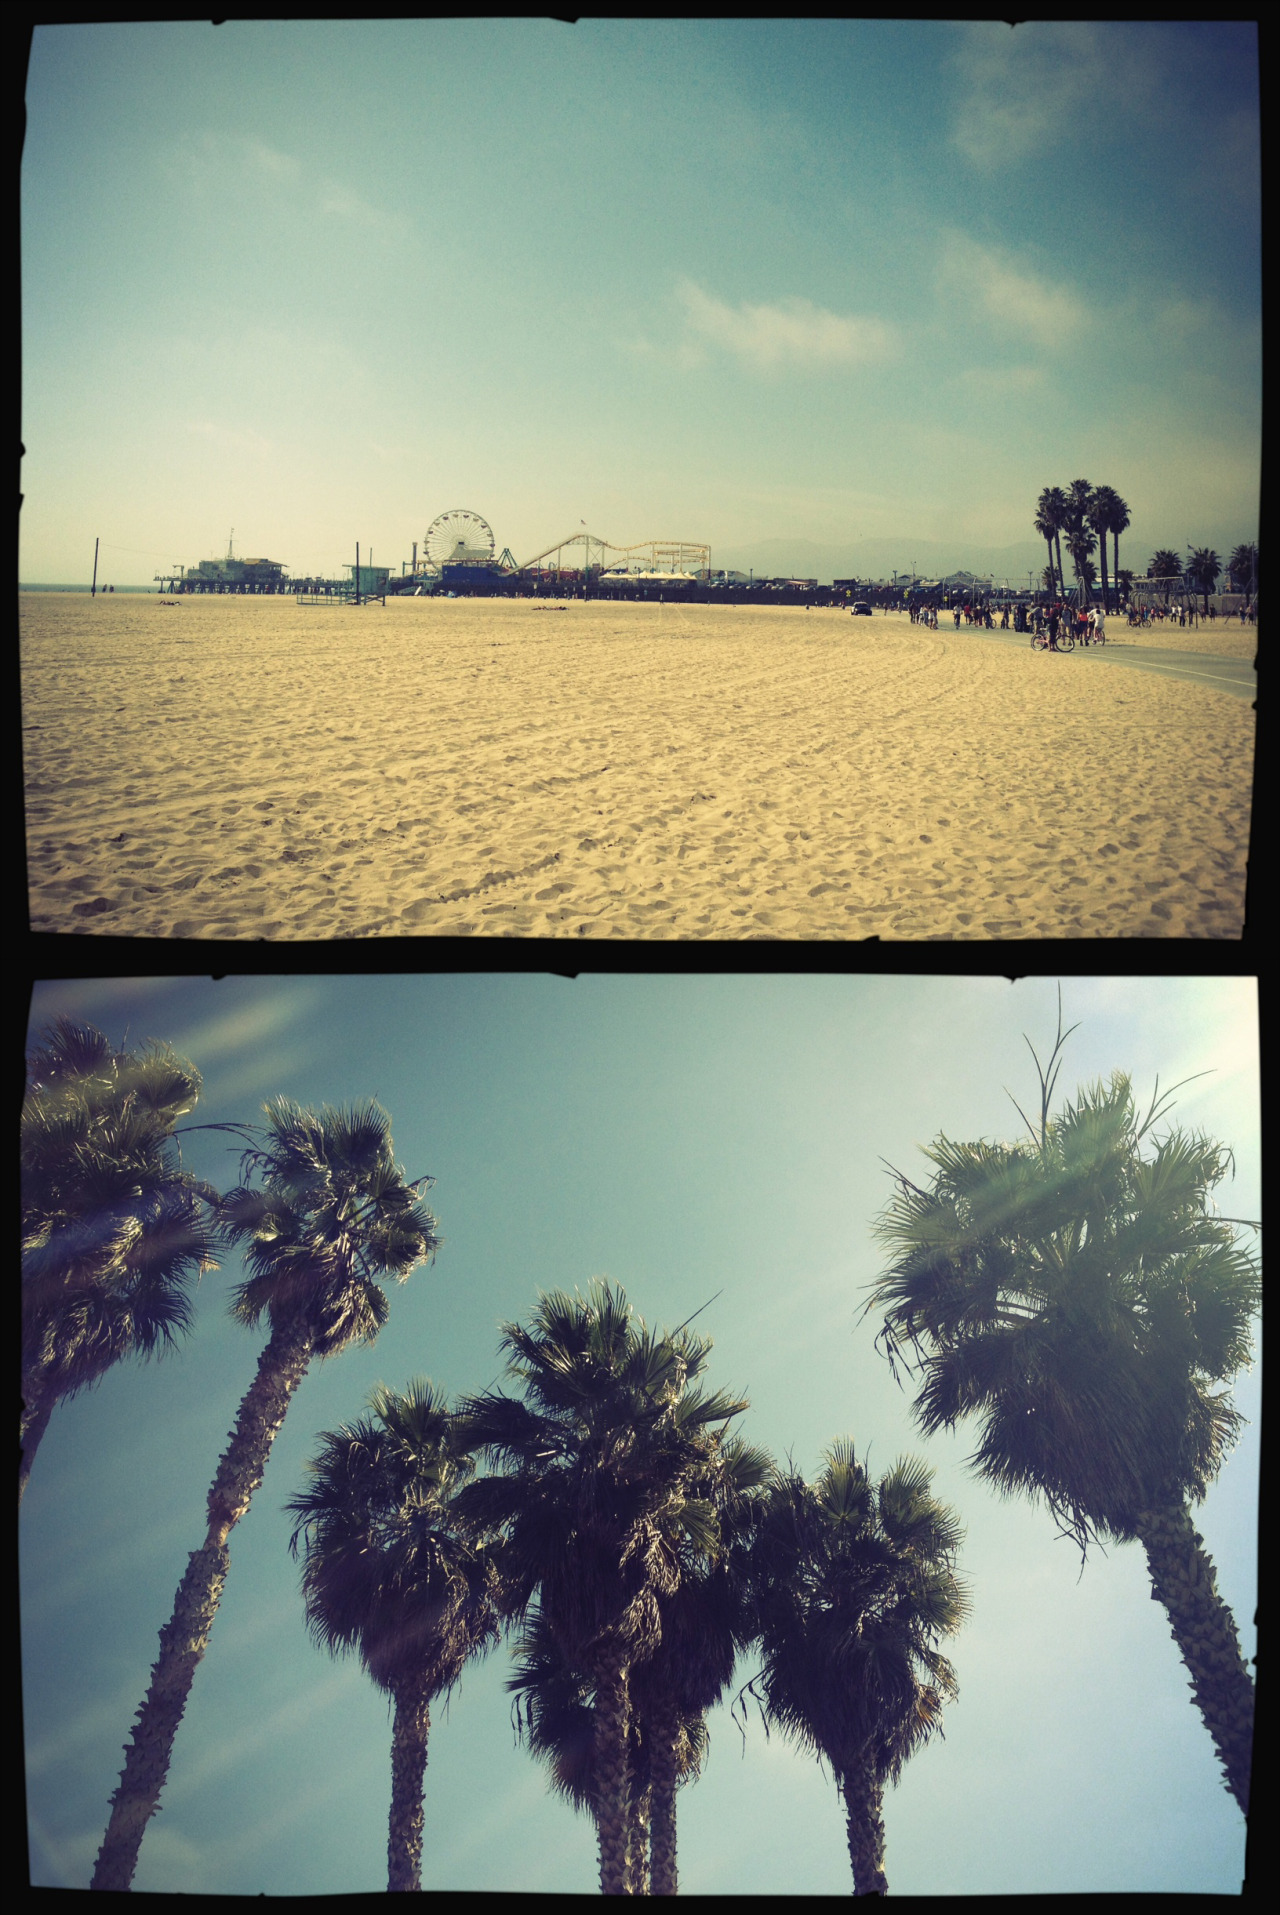 some snapshots from todays 5k run by the beach, another perfect day in sunny California!!